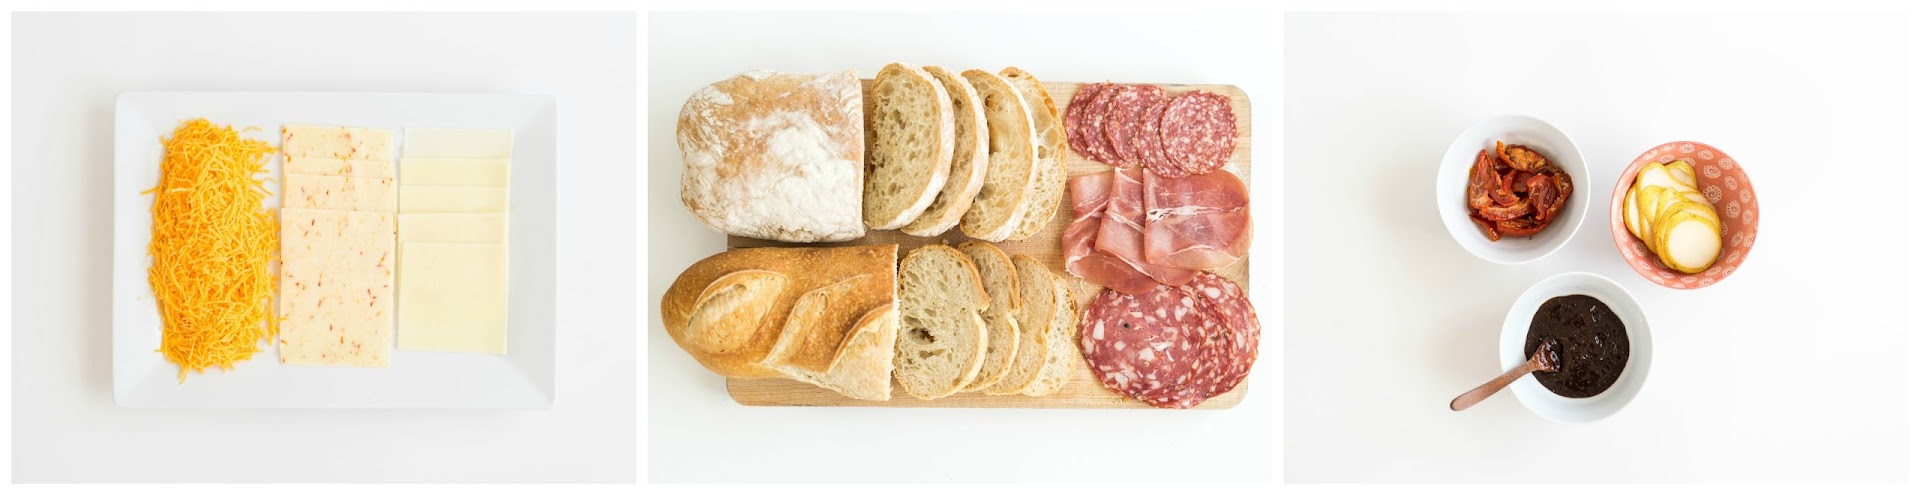 what to buy for a food bar, party food ideas, kids party, tailgating, sports, charcuterie, kraft natural cheese, salame, proscuitto, recipe